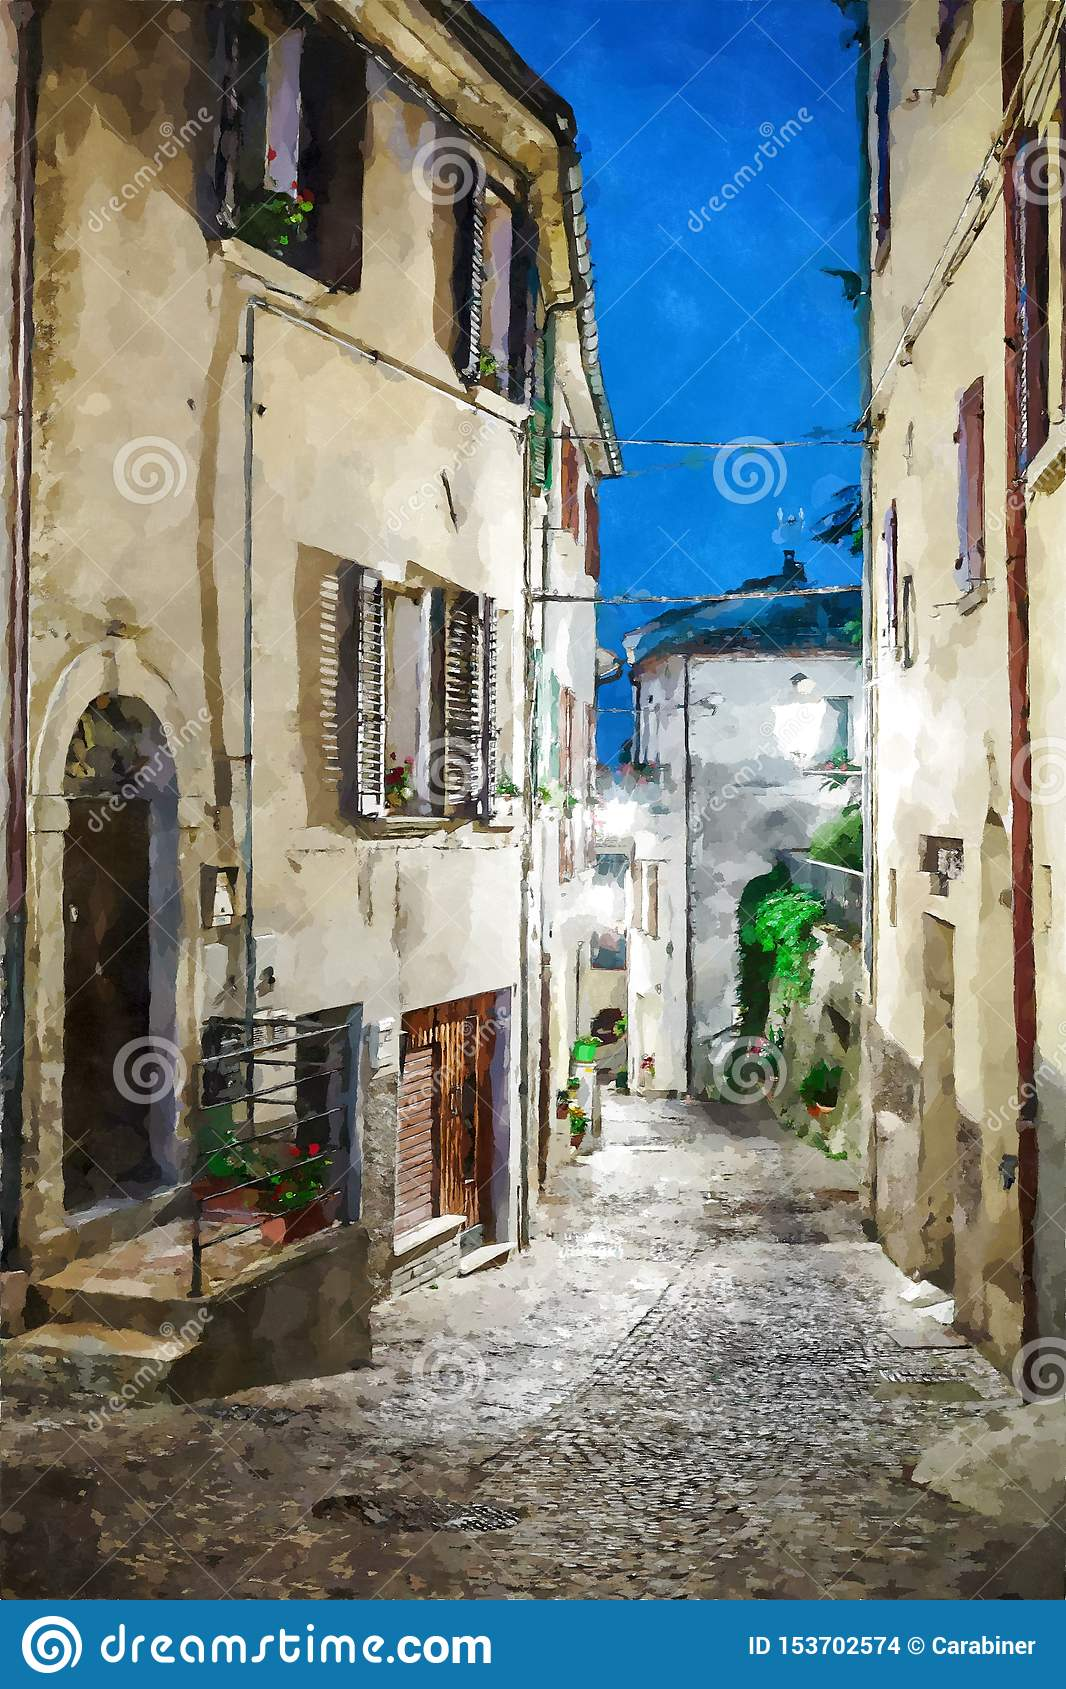 Street in the old town in Italy at night. Digital illustration in watercolor style